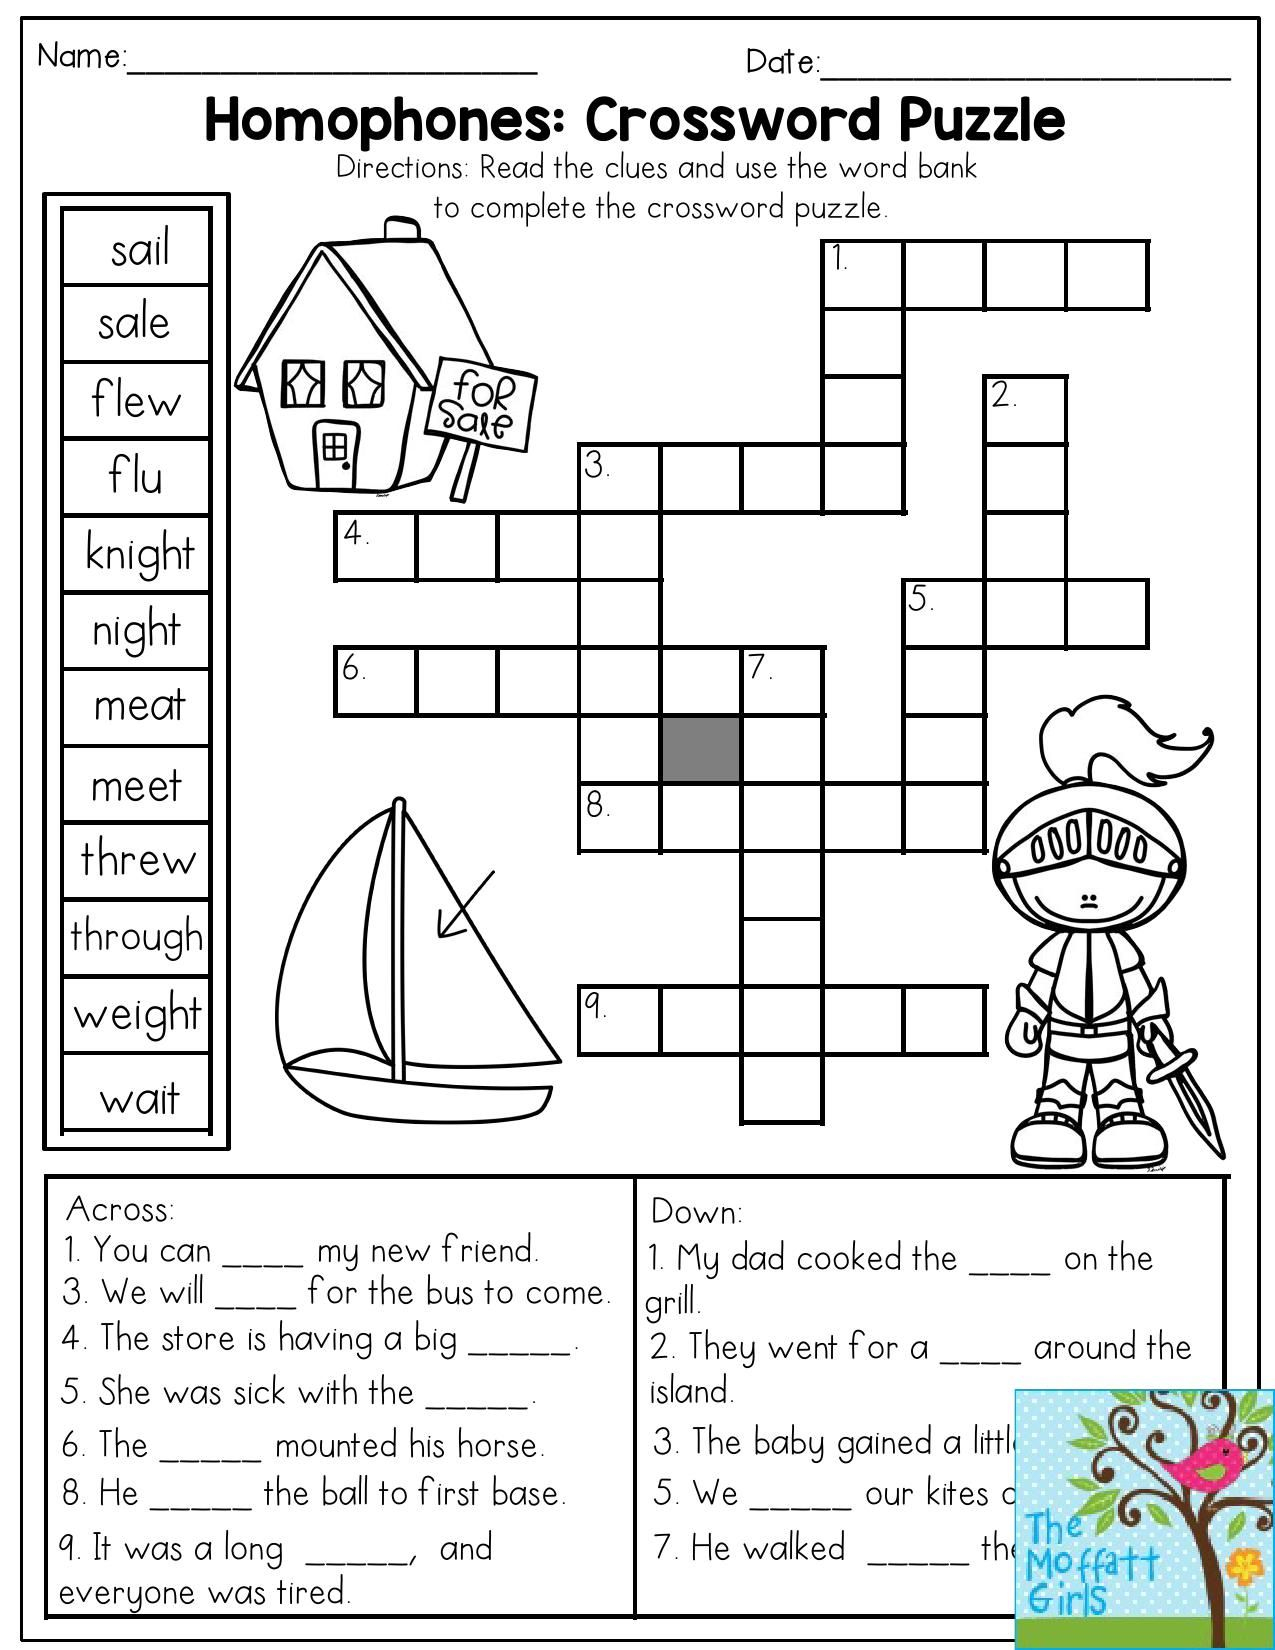 Homophones: Crossword Puzzle- Read The Clues And Use The Word Bank - Printable Crosswords Grade 3